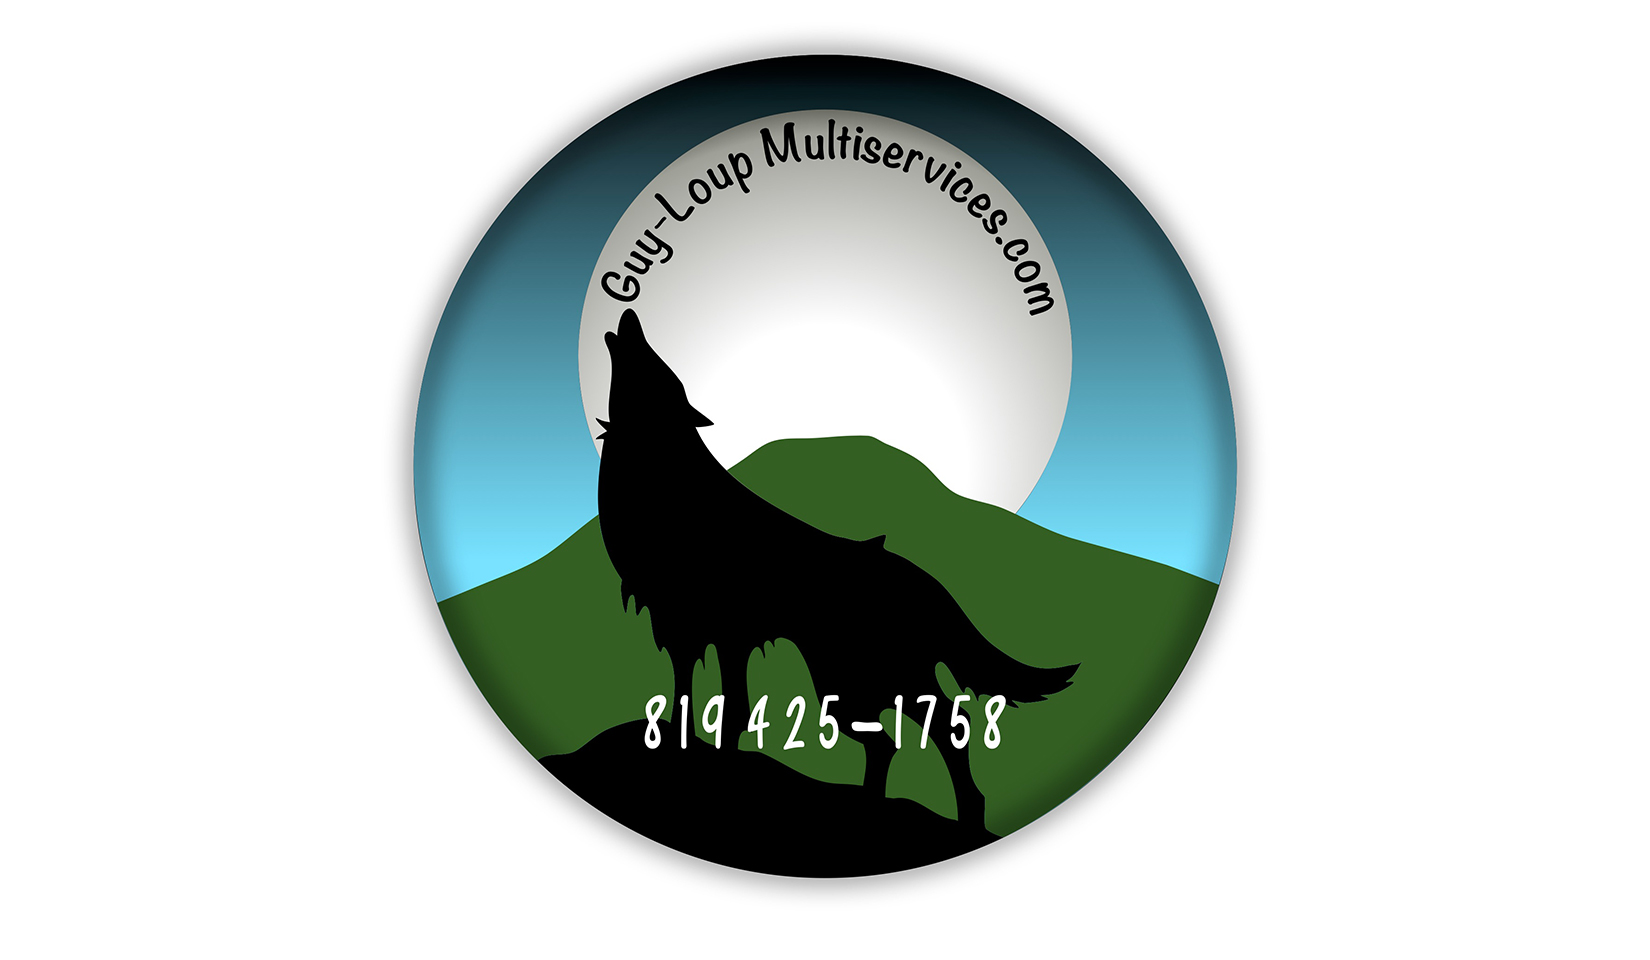 (Logo) Guy-Loup Multiservices